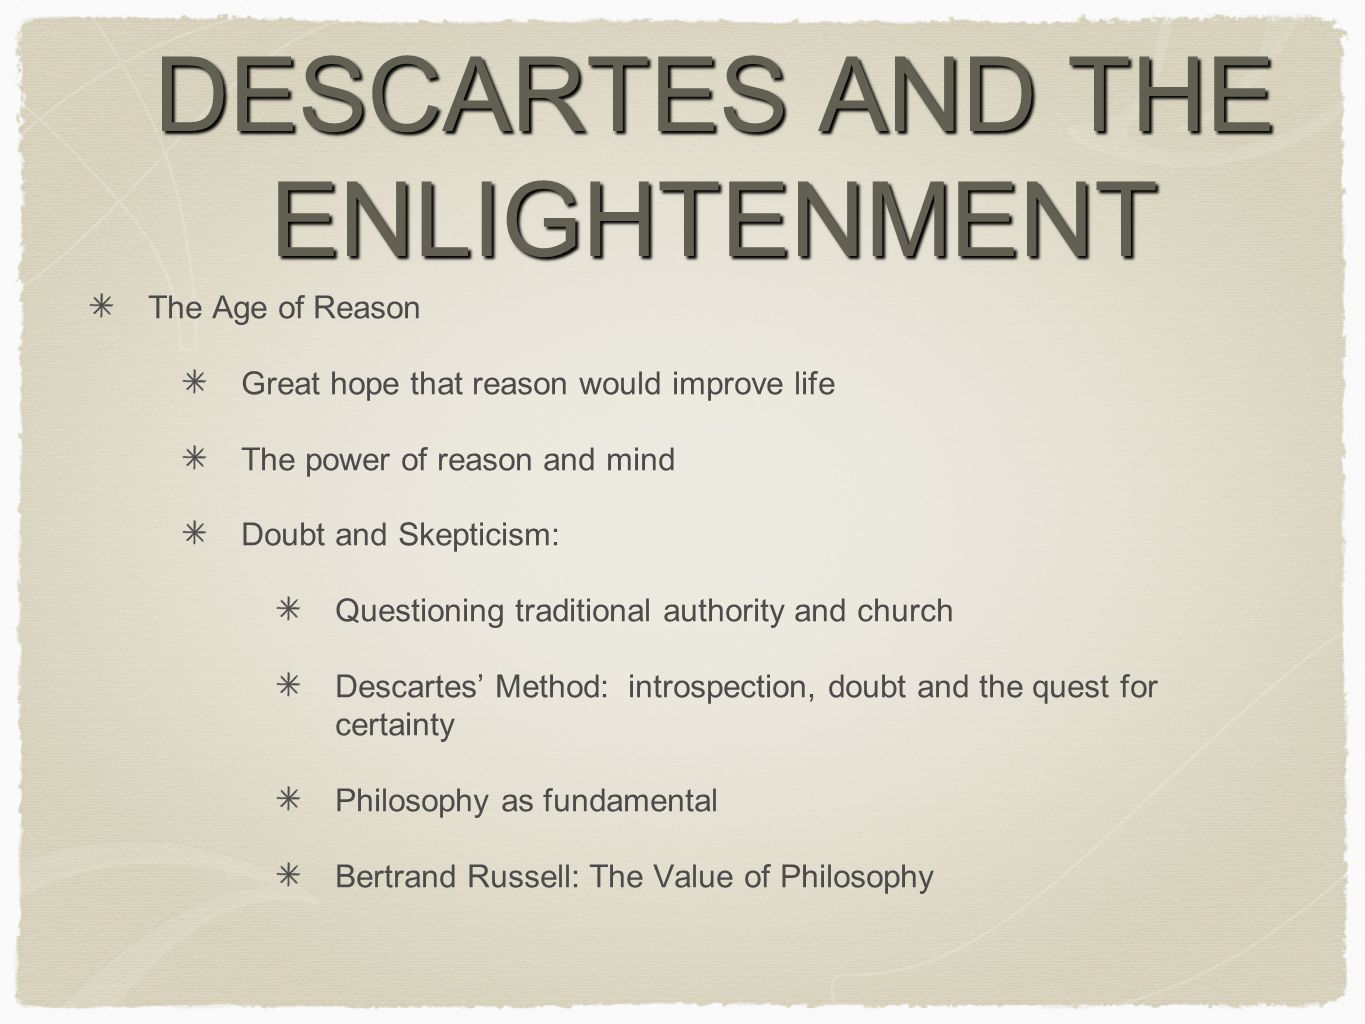 DESCARTES AND THE ENLIGHTENMENT The Age of Reason Great hope that reason would improve life The power of reason and mind Doubt and Skepticism: Questioning traditional authority and church Descartes' Method: introspection, doubt and the quest for certainty Philosophy as fundamental Bertrand Russell: The Value of Philosophy